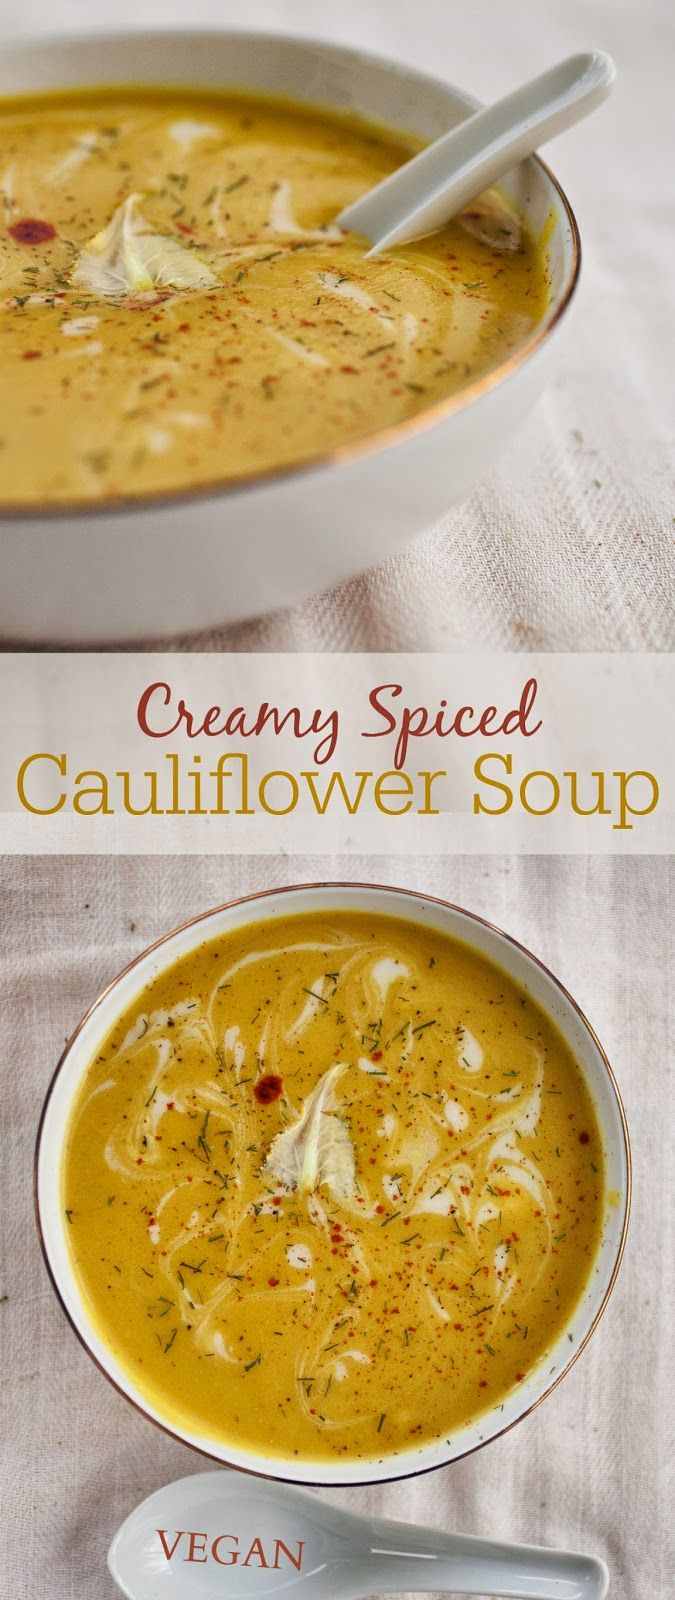 Cauliflower soup. It's Soup Season. Clean Eating. Vegan Soup